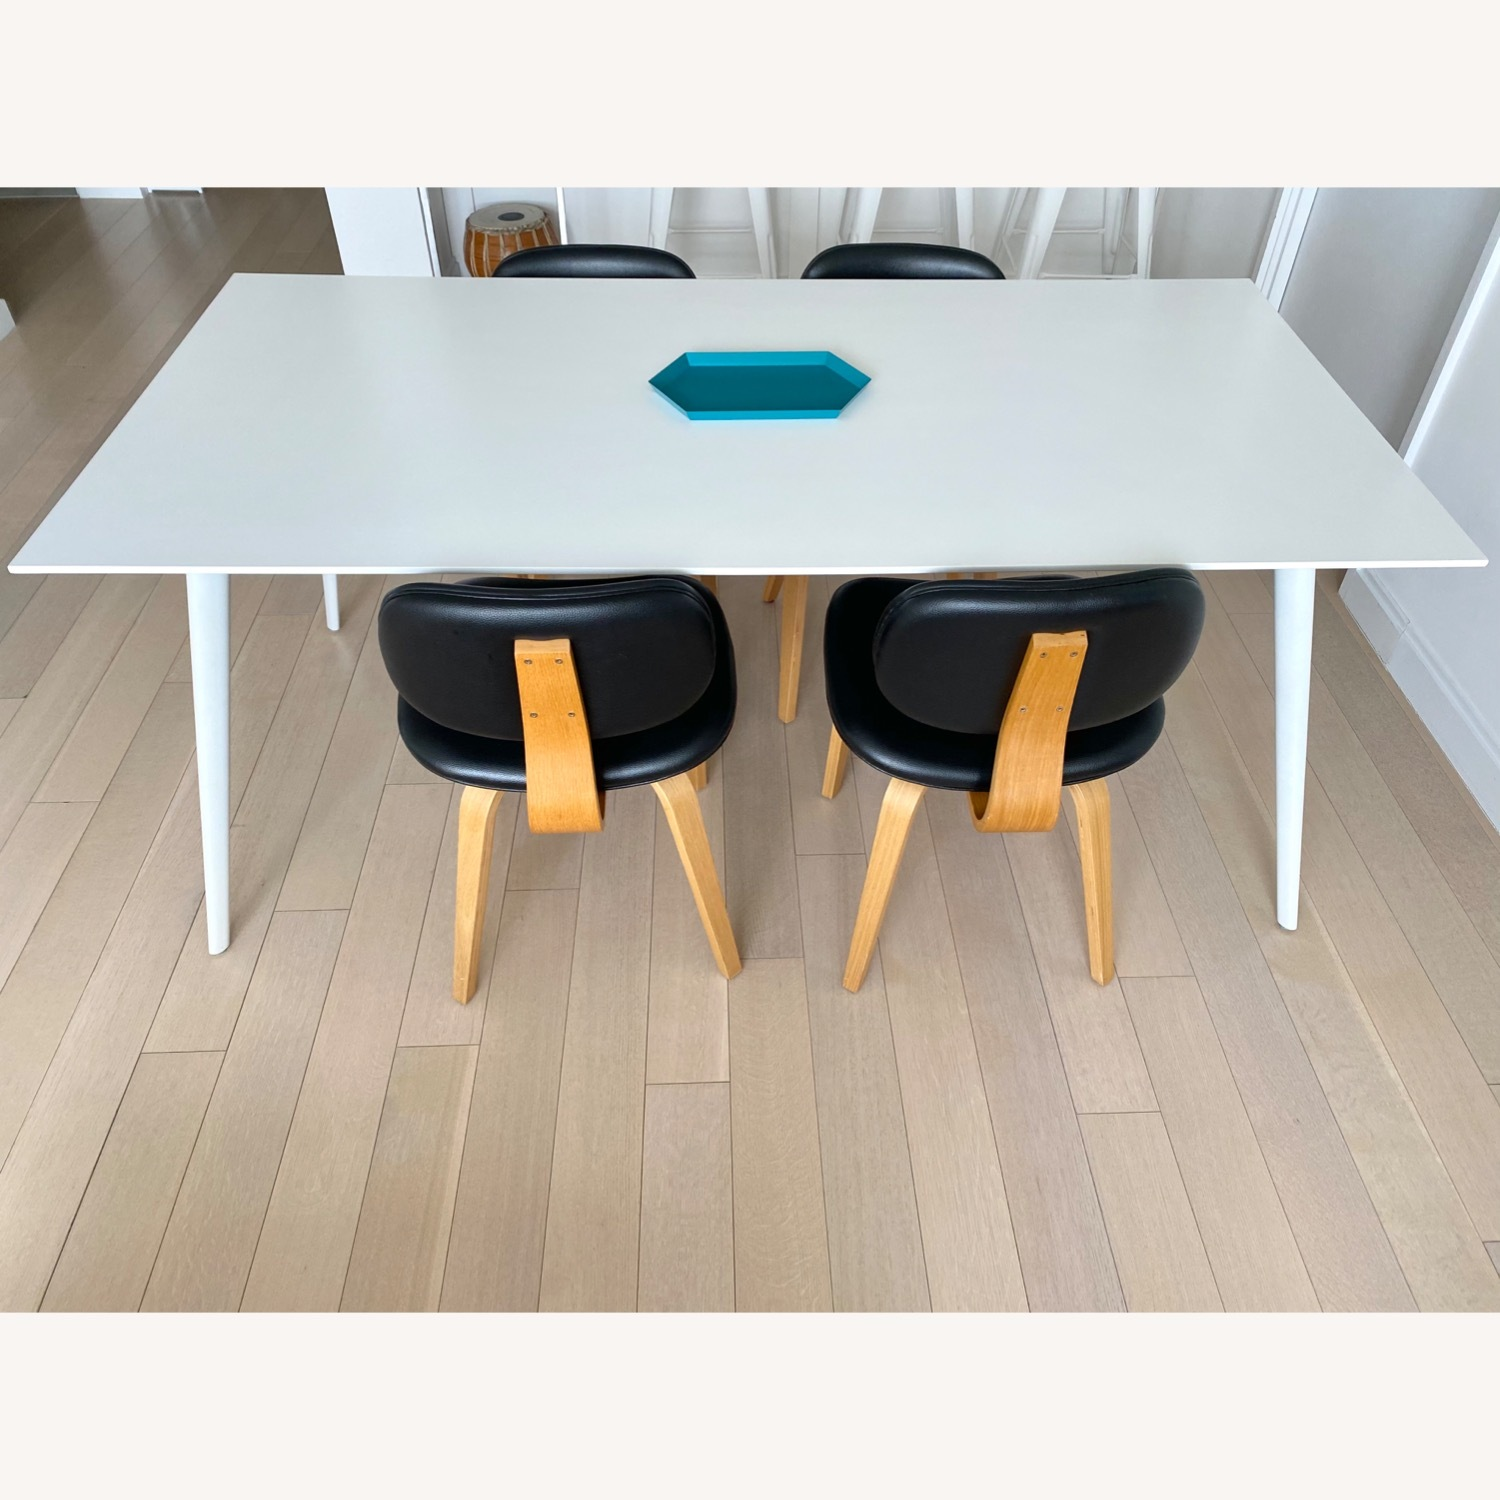 ABC Home White Modern Dining Table - image-8